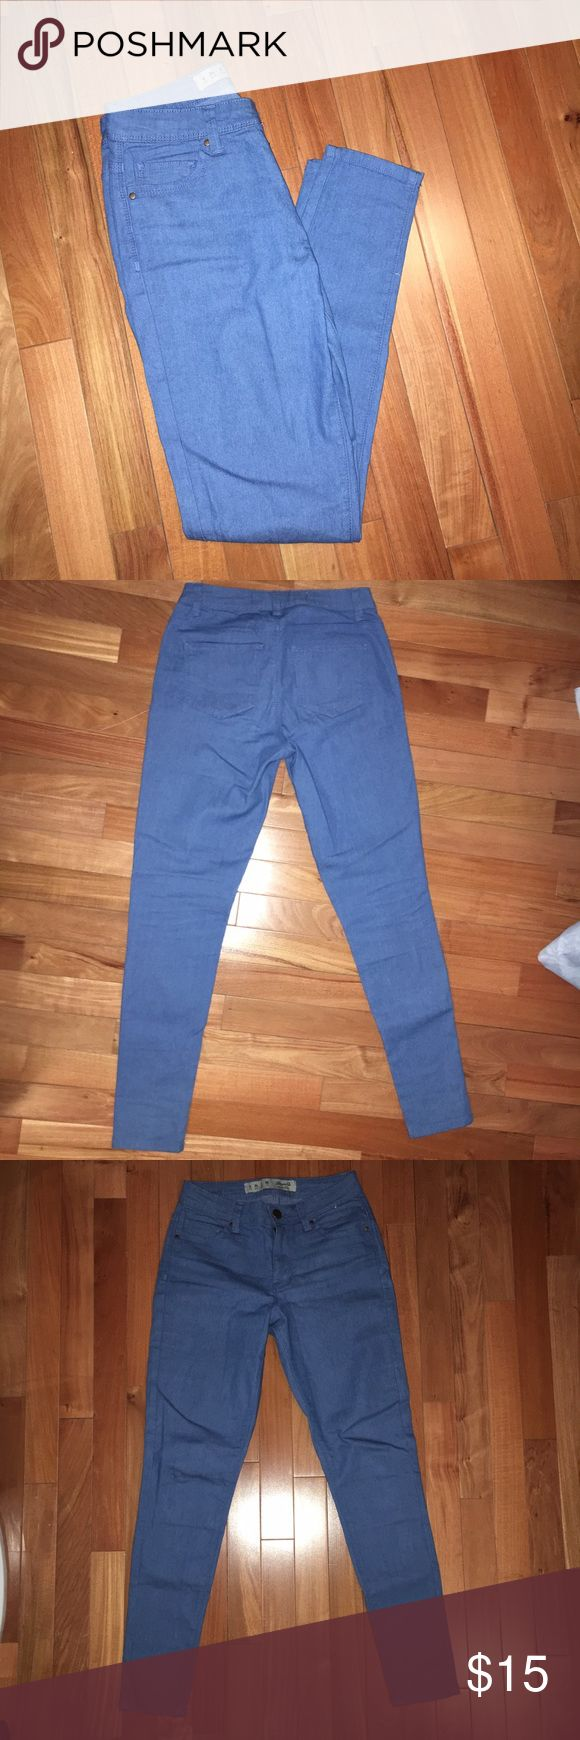 Jeans Medium wash, regular length, mid-rise jeans. Wore them two or three times but were too tight! Denim Co. Jeans Skinny